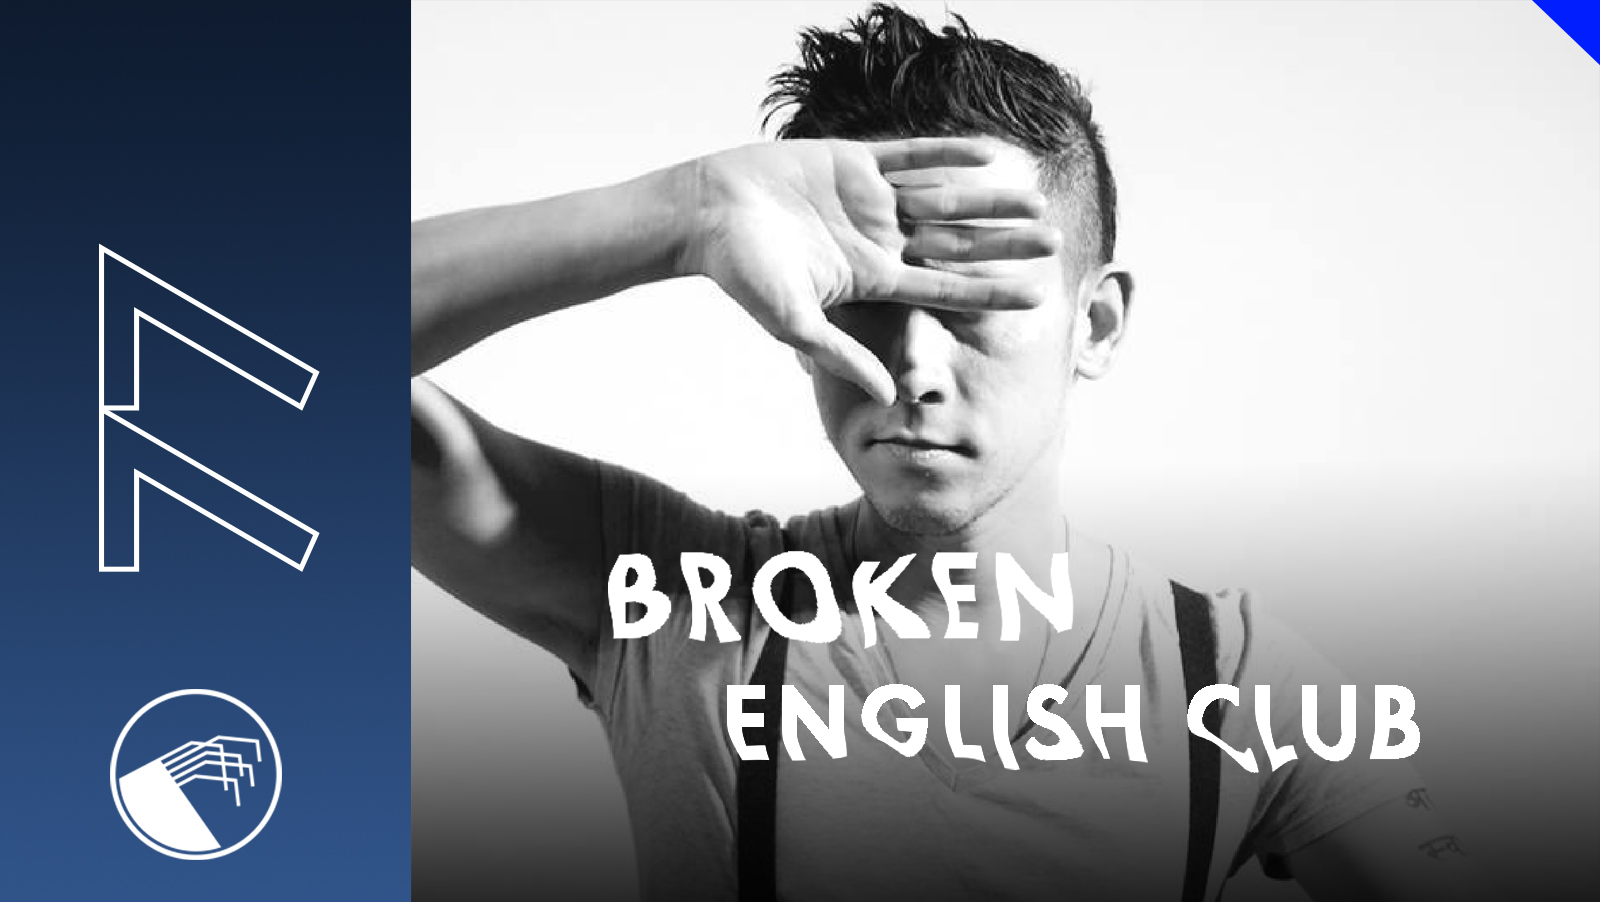 077 Broken English Club